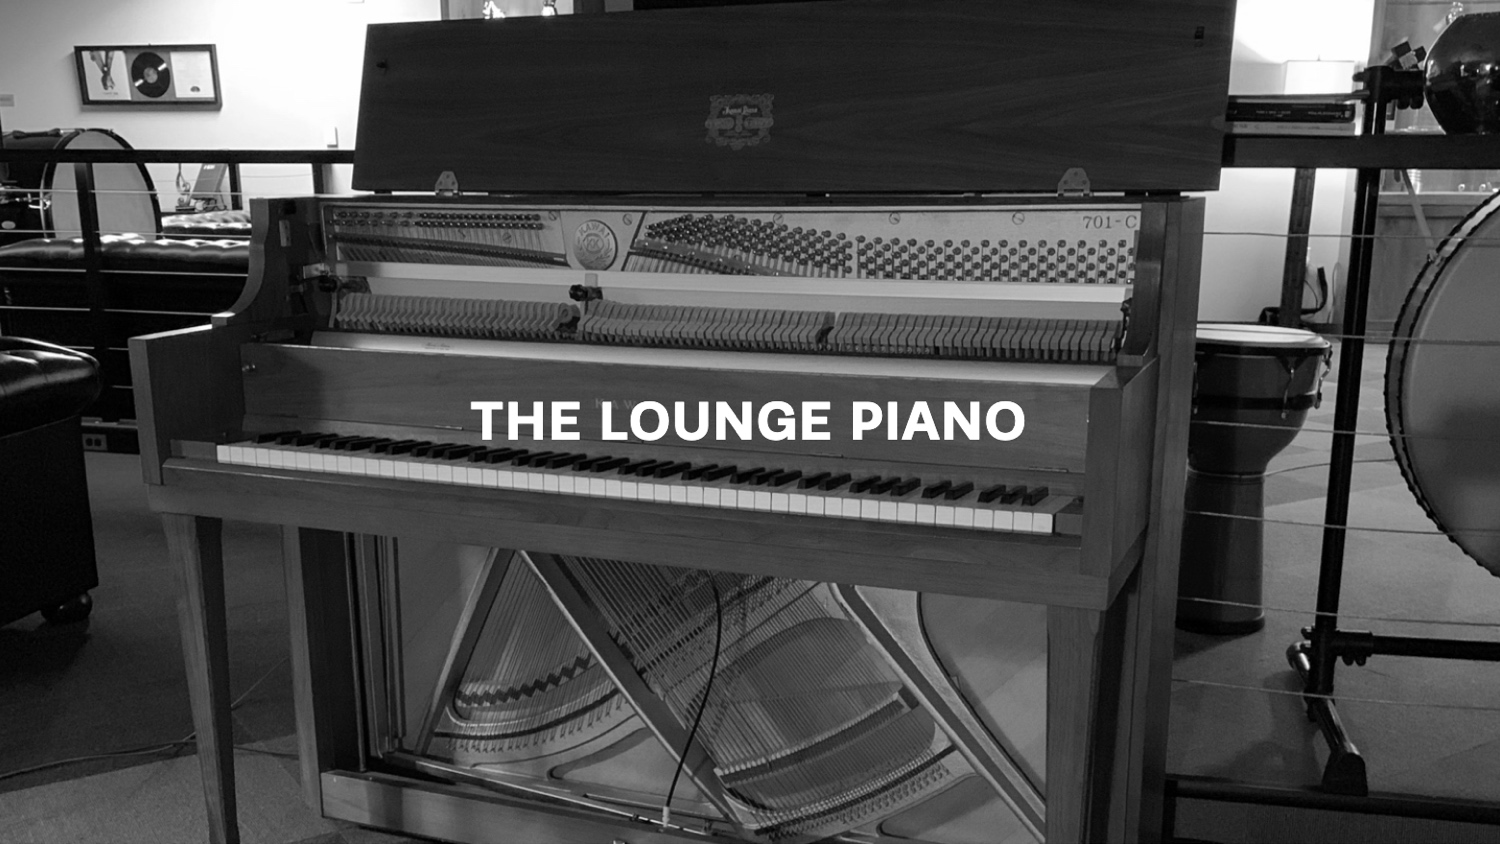 The Lounge Piano Text.jpg